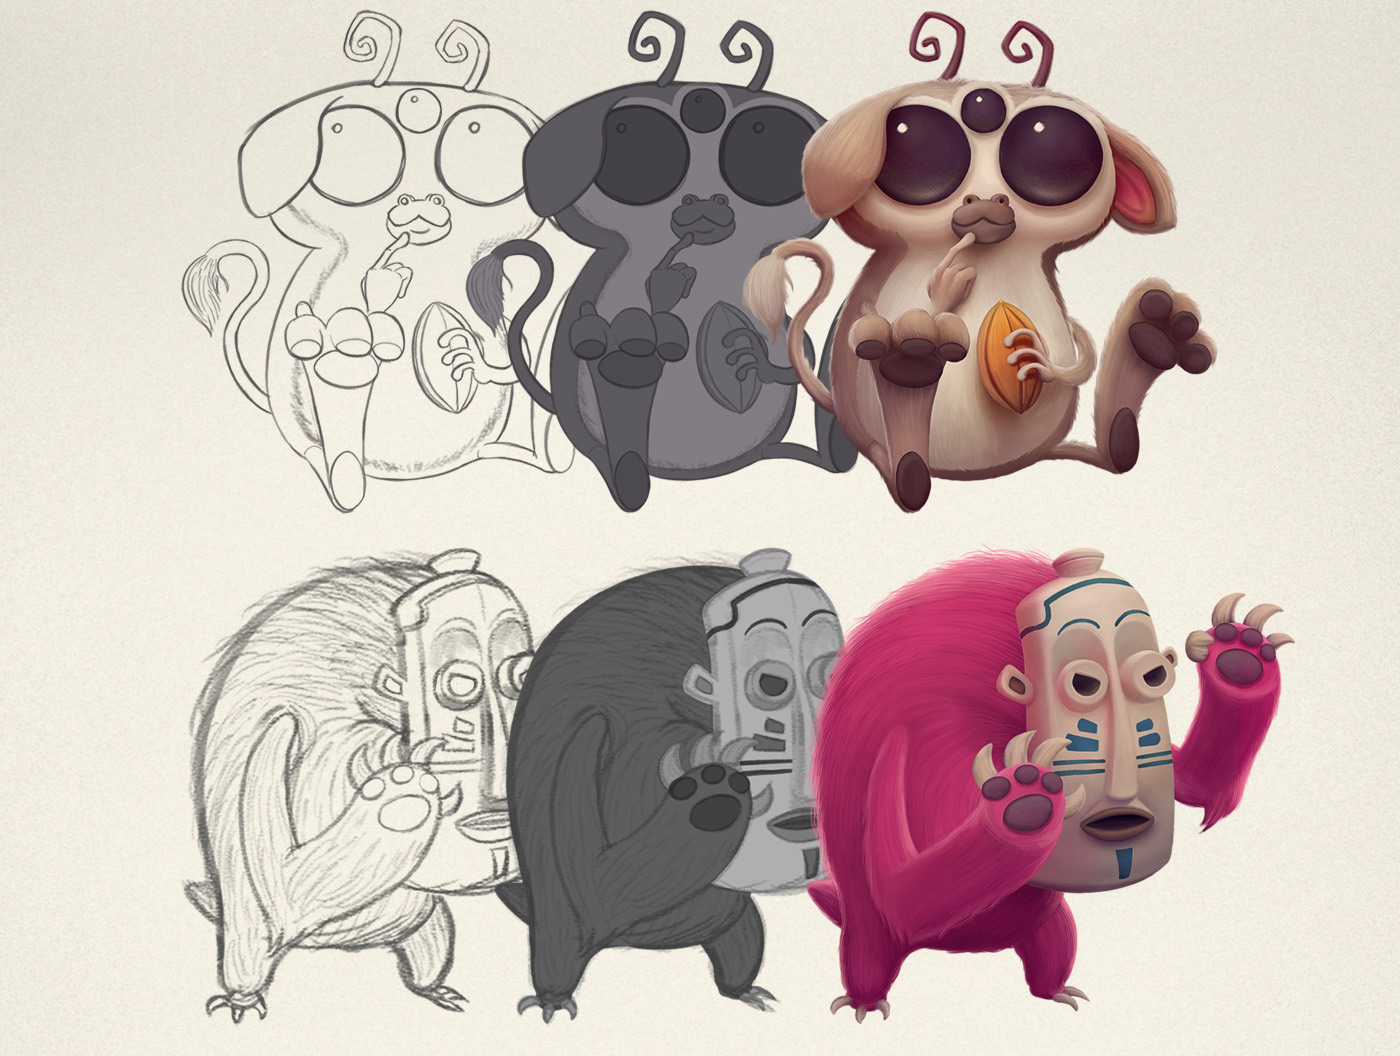 Character Design and Illustration, Cartooning